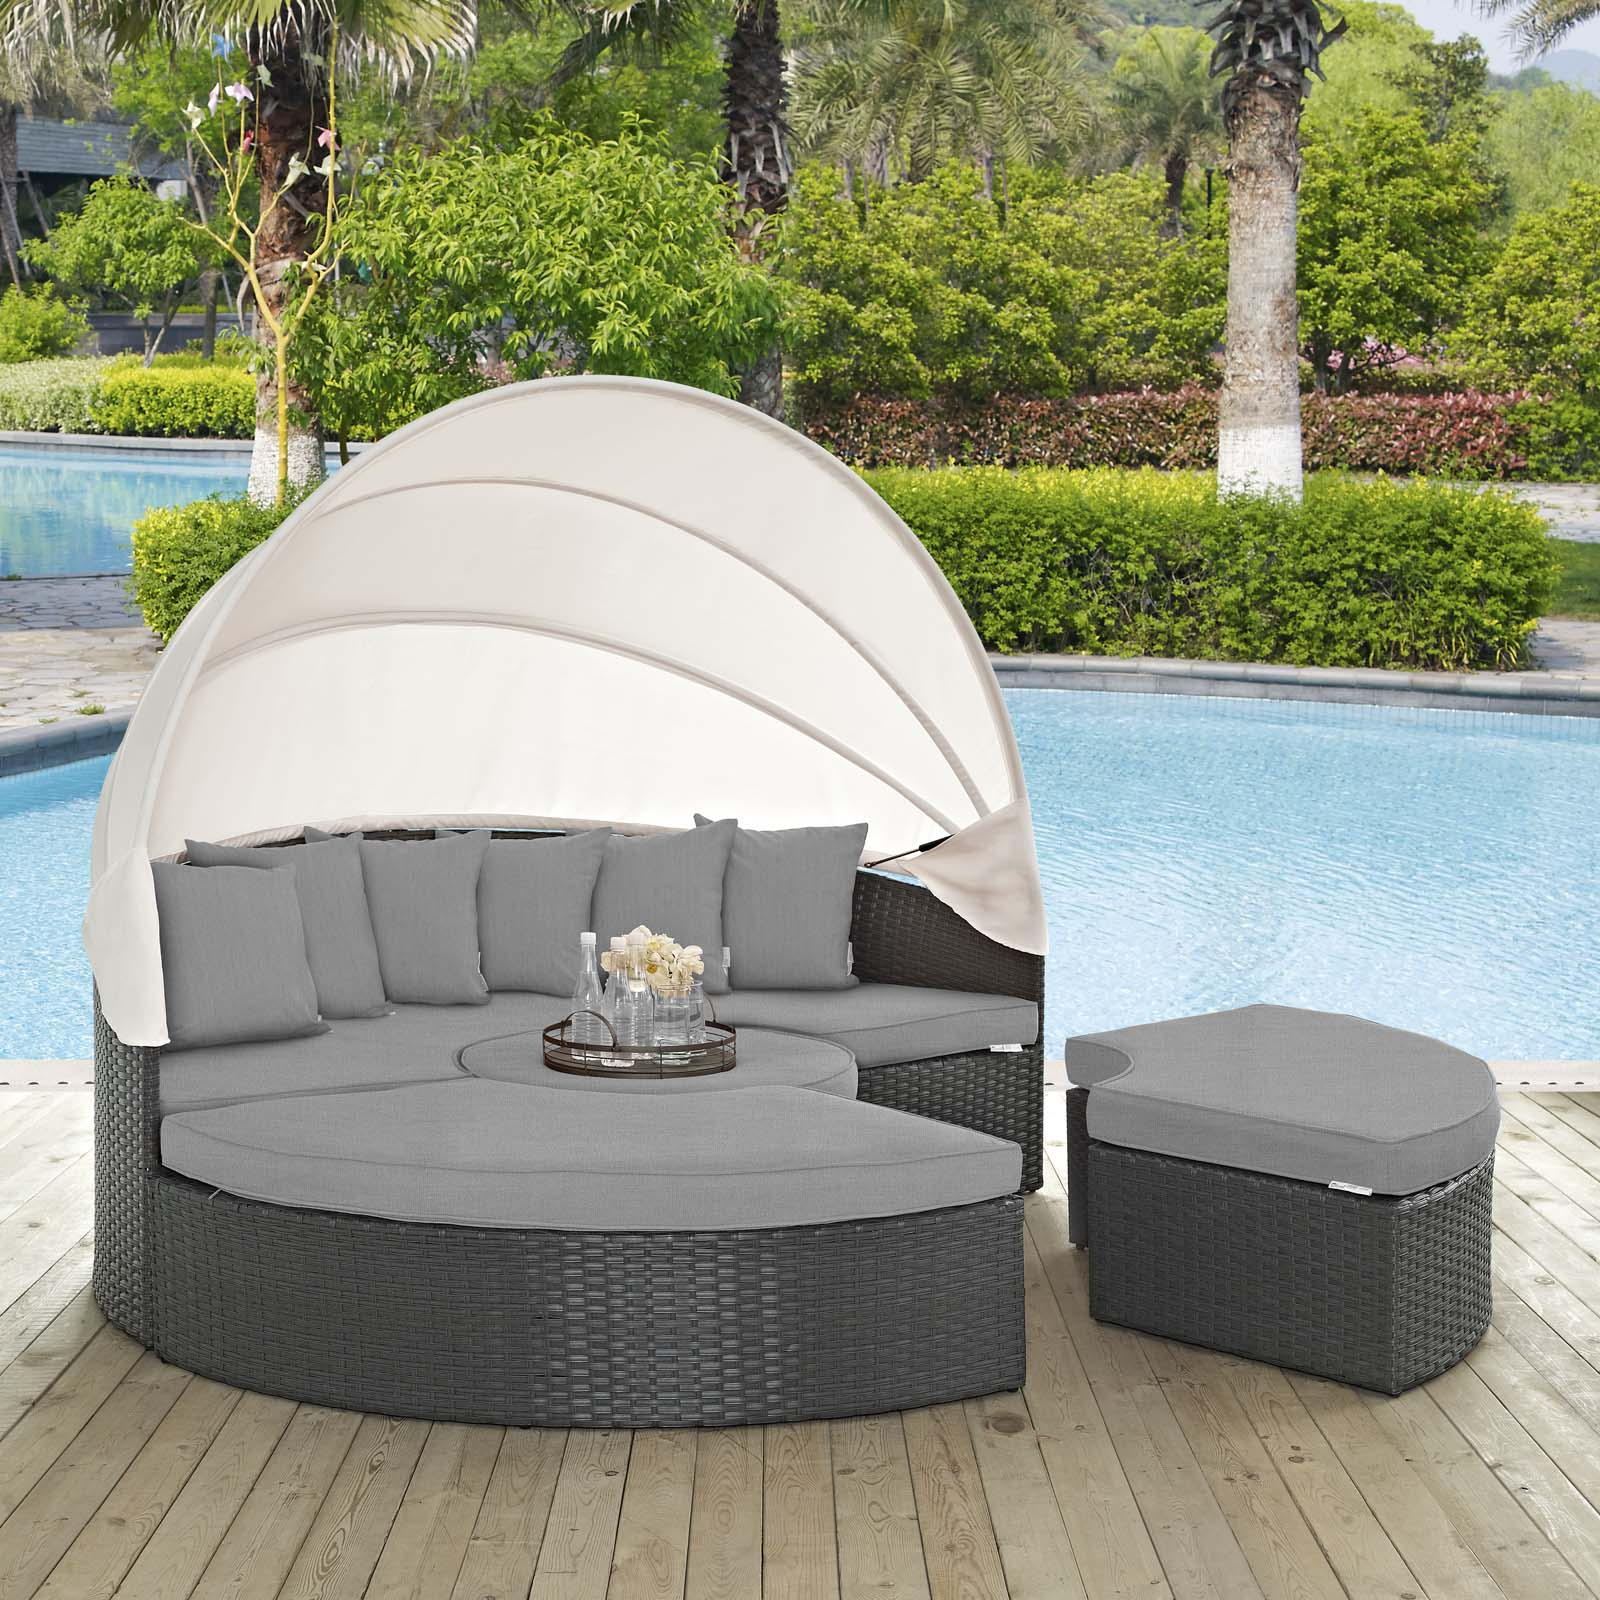 Modway Sojourn Outdoor Patio Sunbrella® Daybed, Multiple Colors